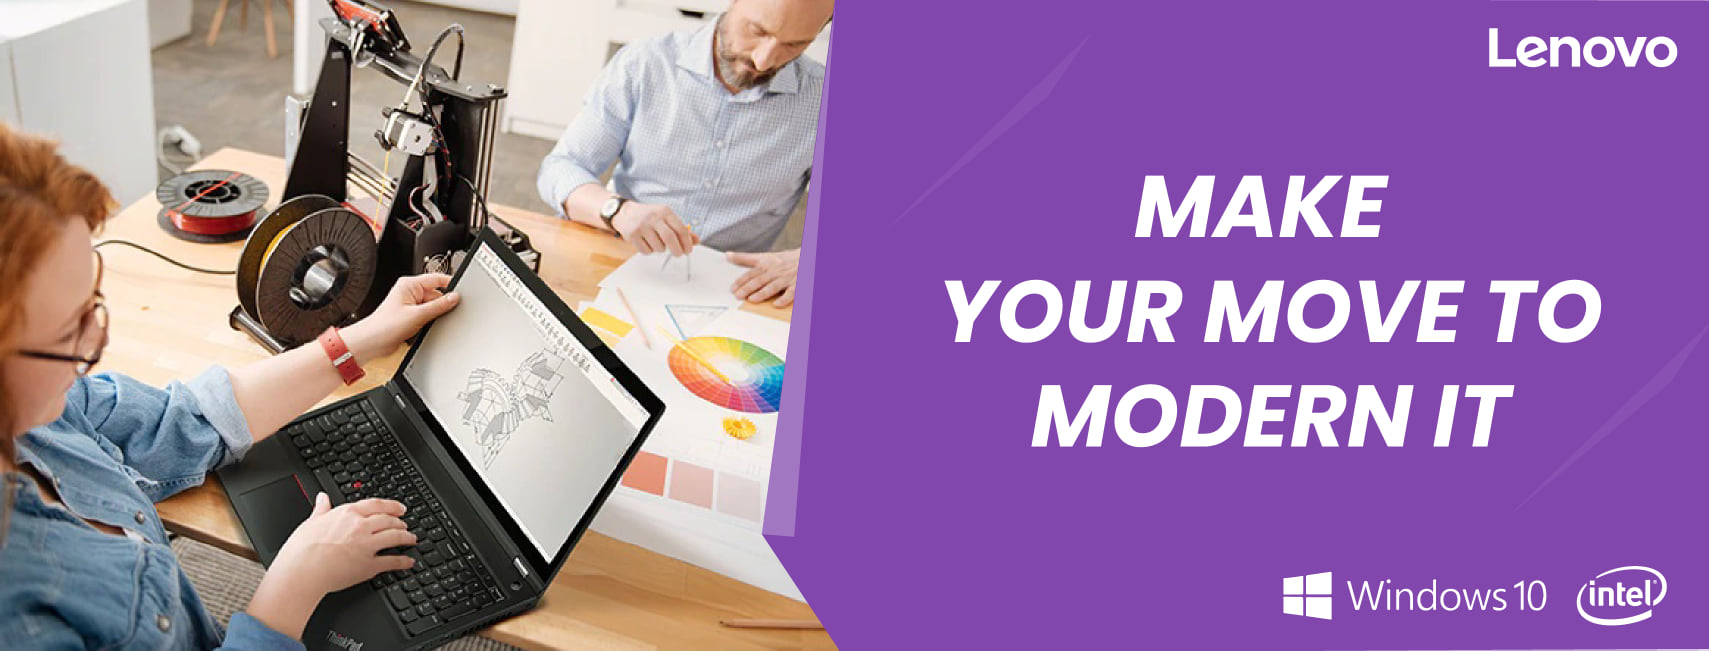 Make Your Move To Modern IT